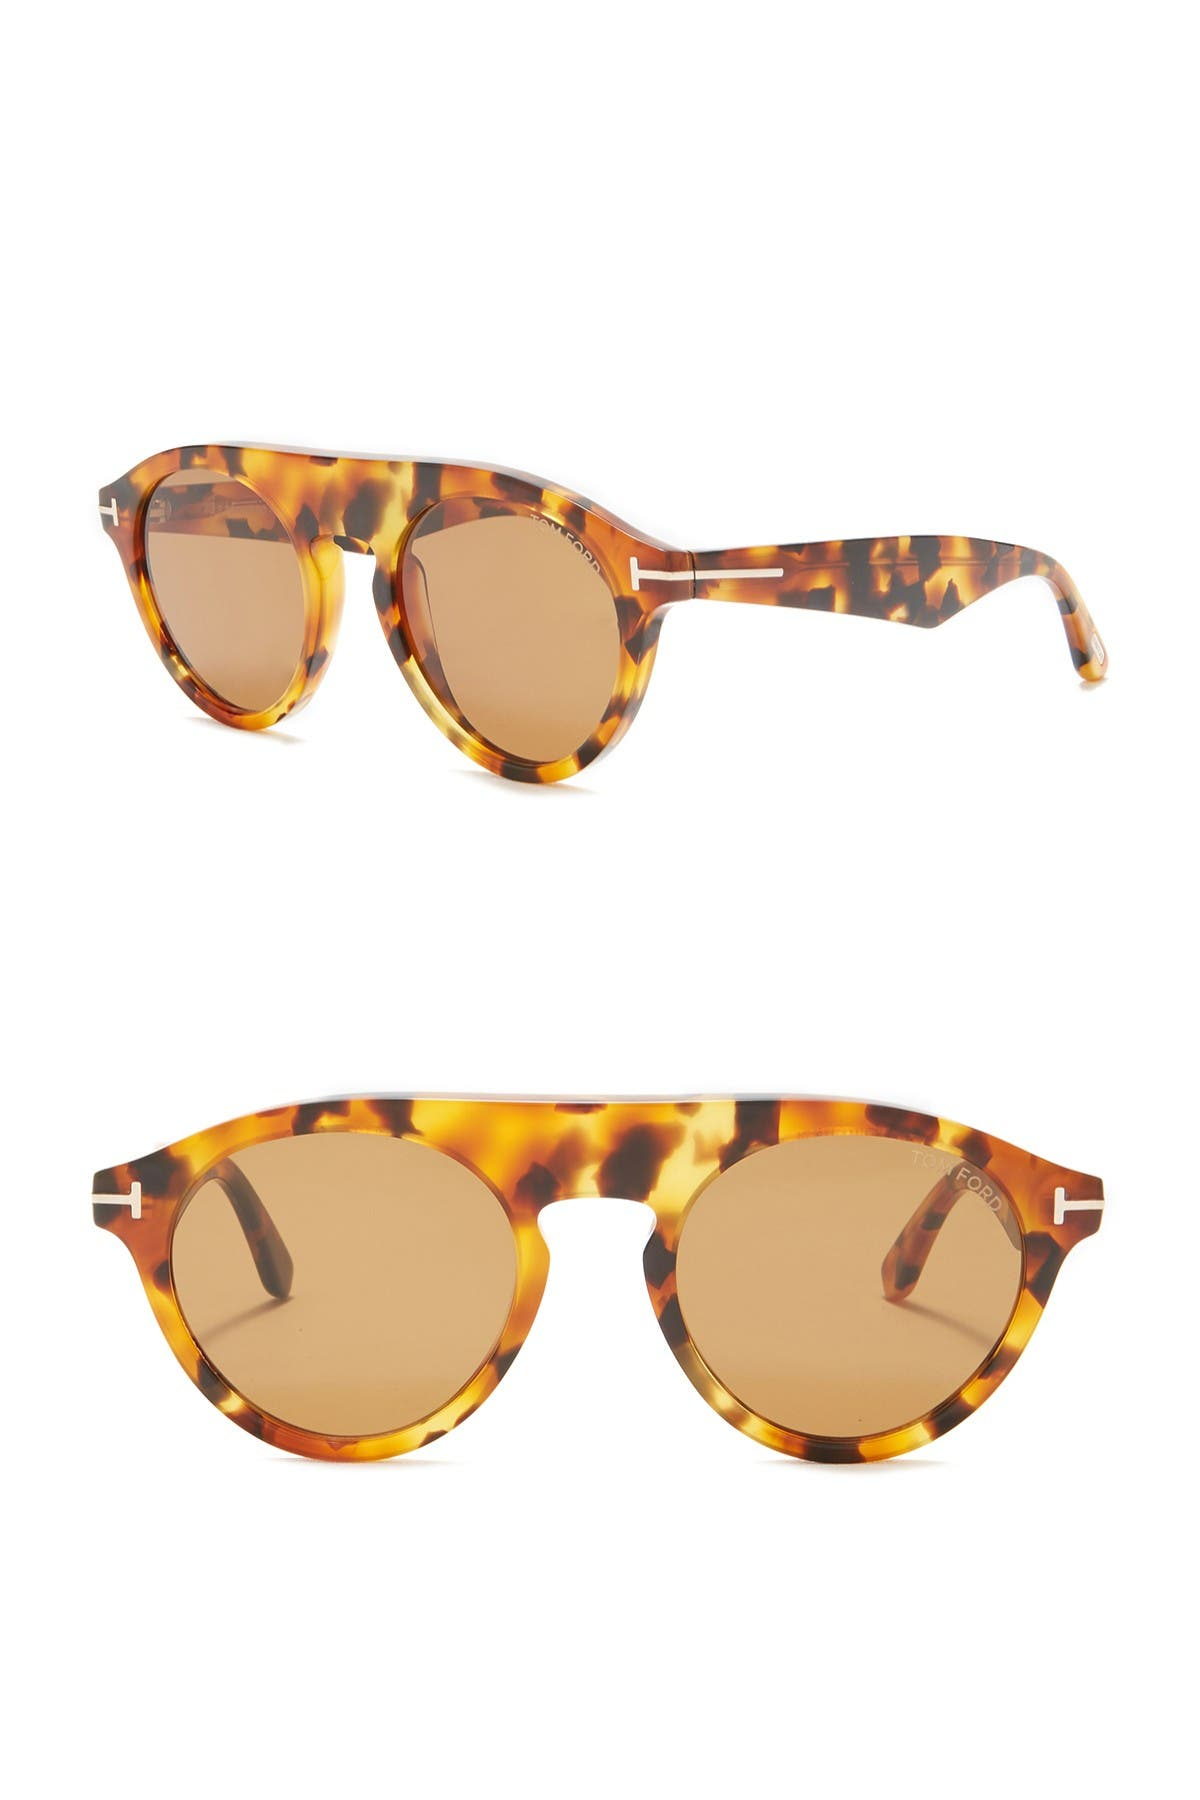 Image of Tom Ford Christopher 49mm Round Sunglasses